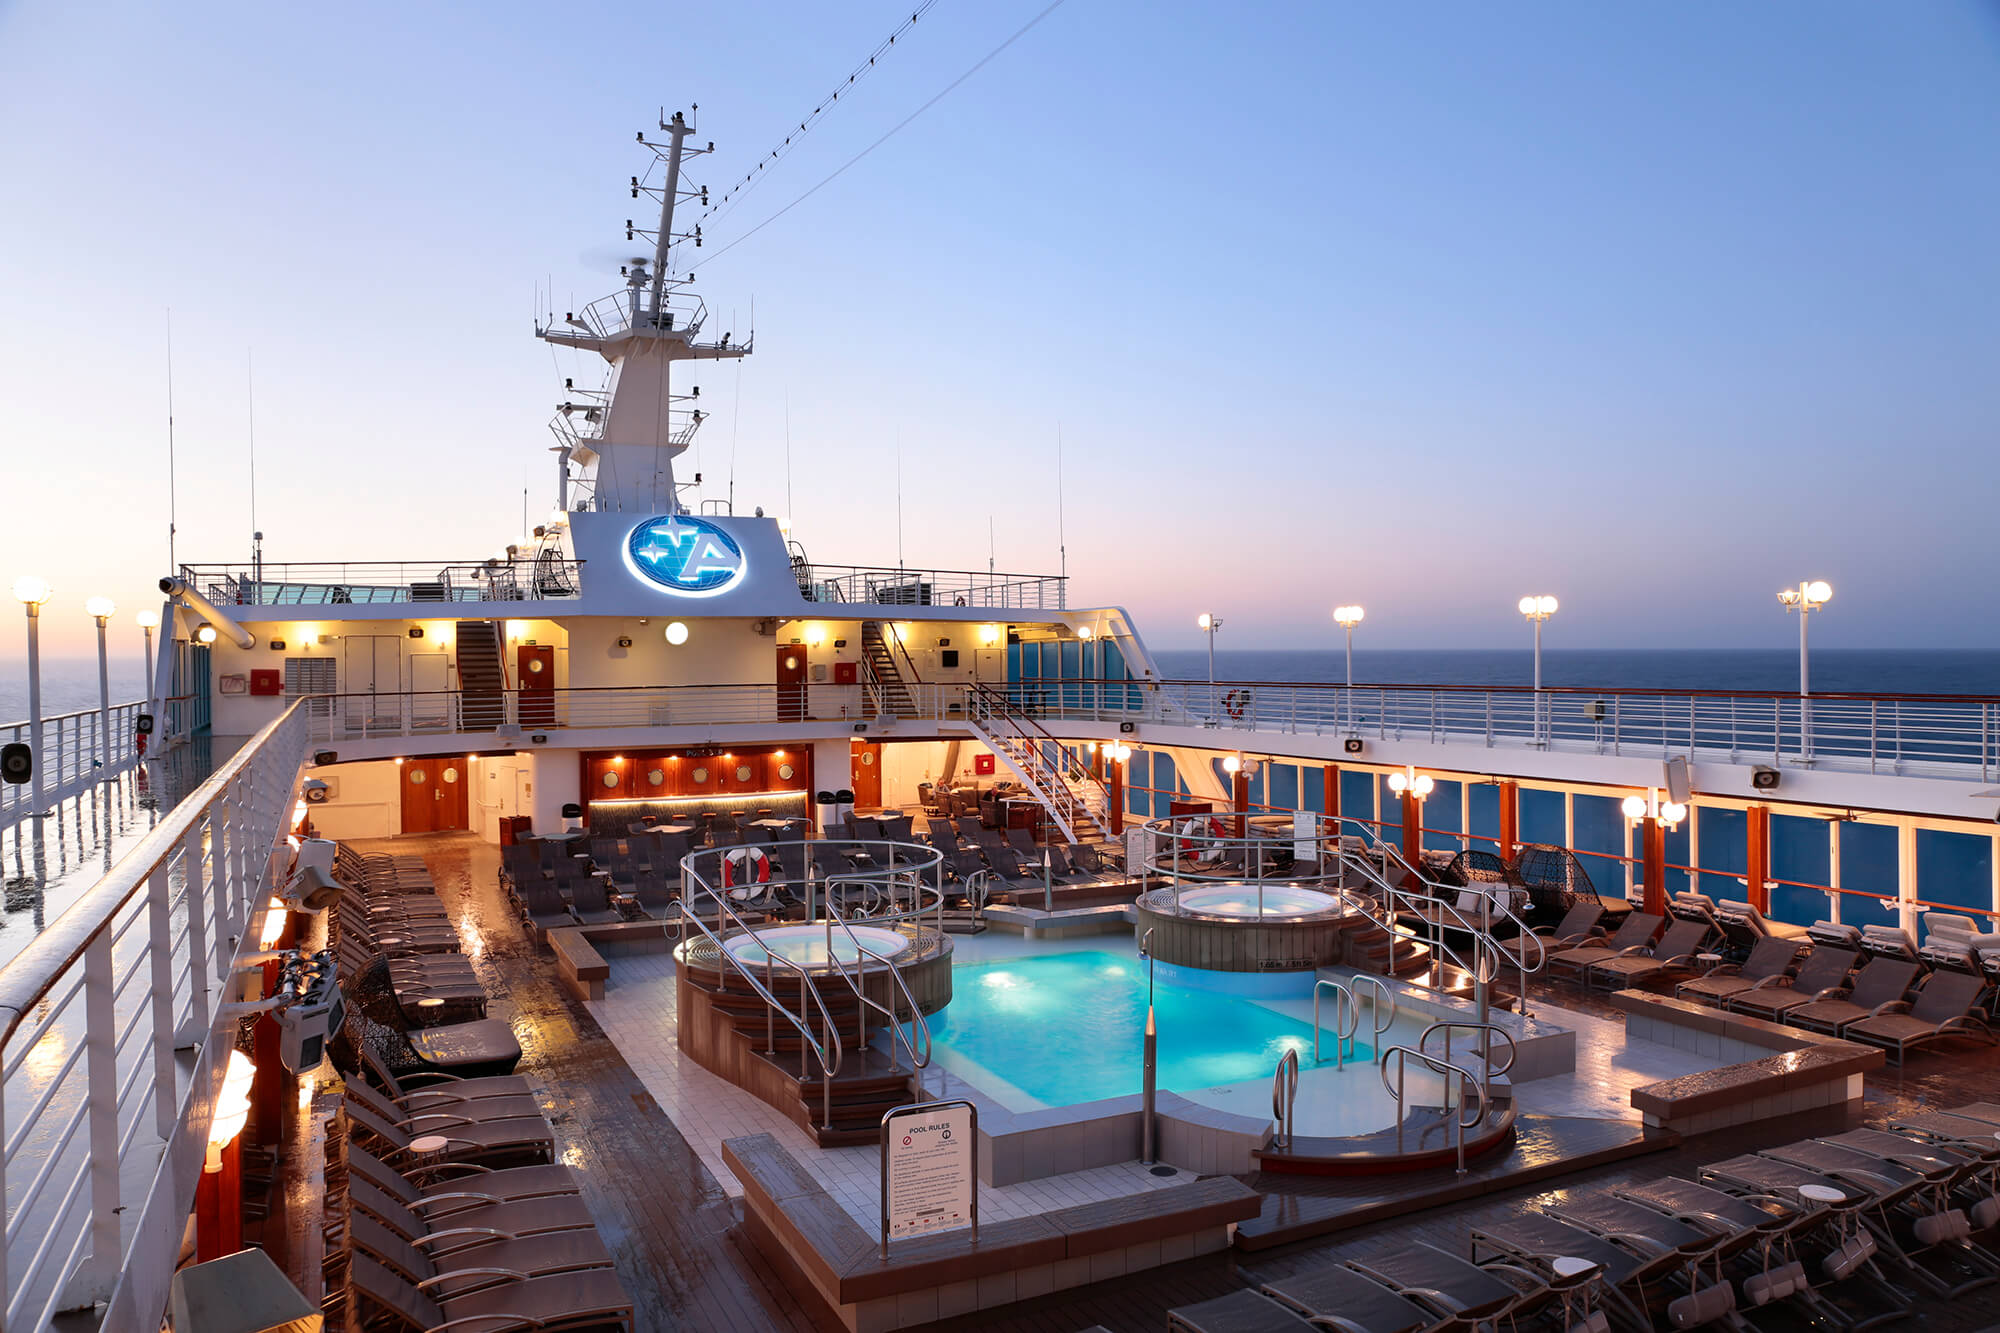 pool deck on Amazara Journey lights up at night